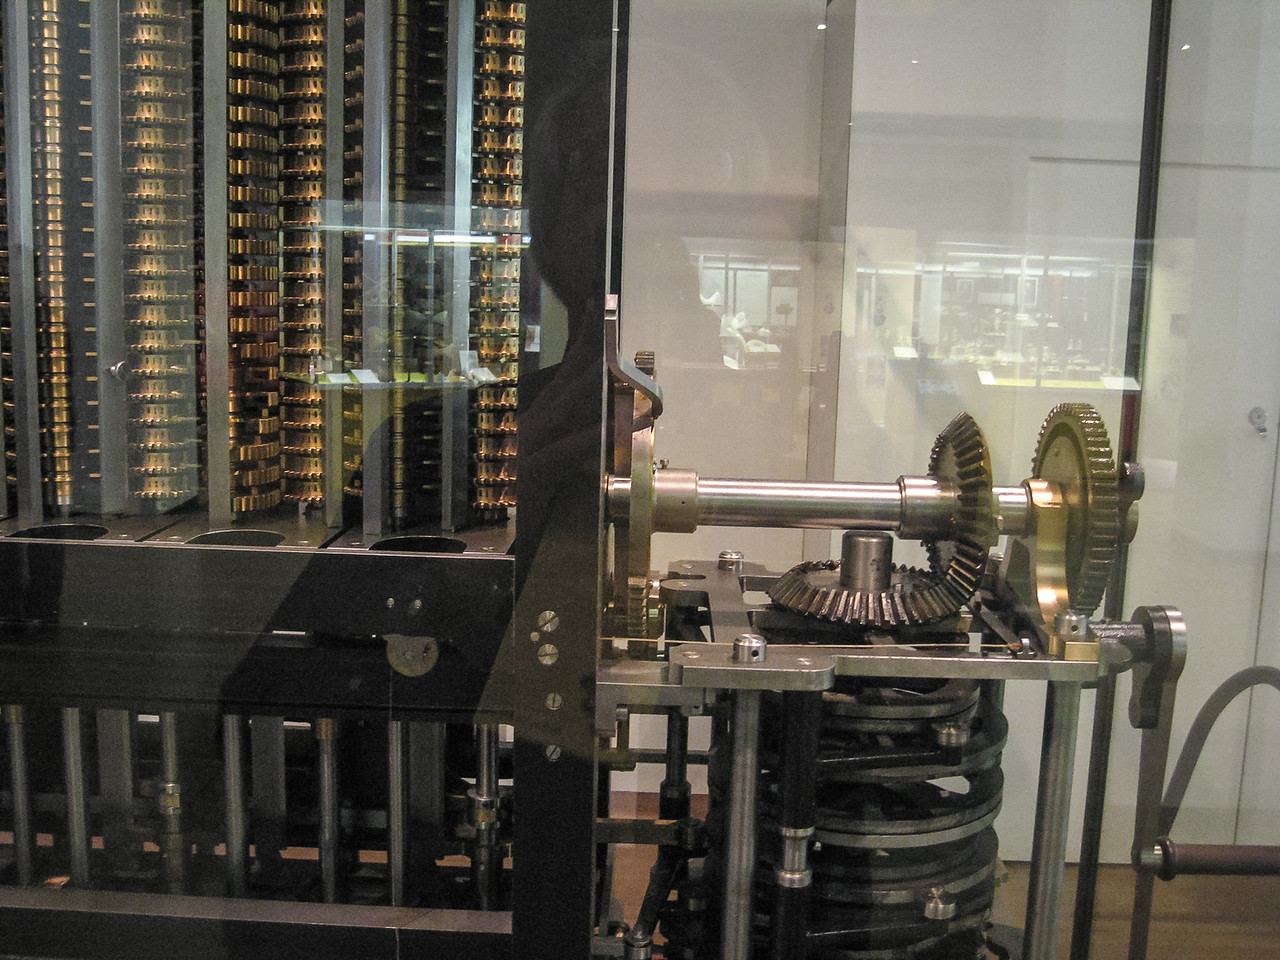 Detail from the Difference Engine #2